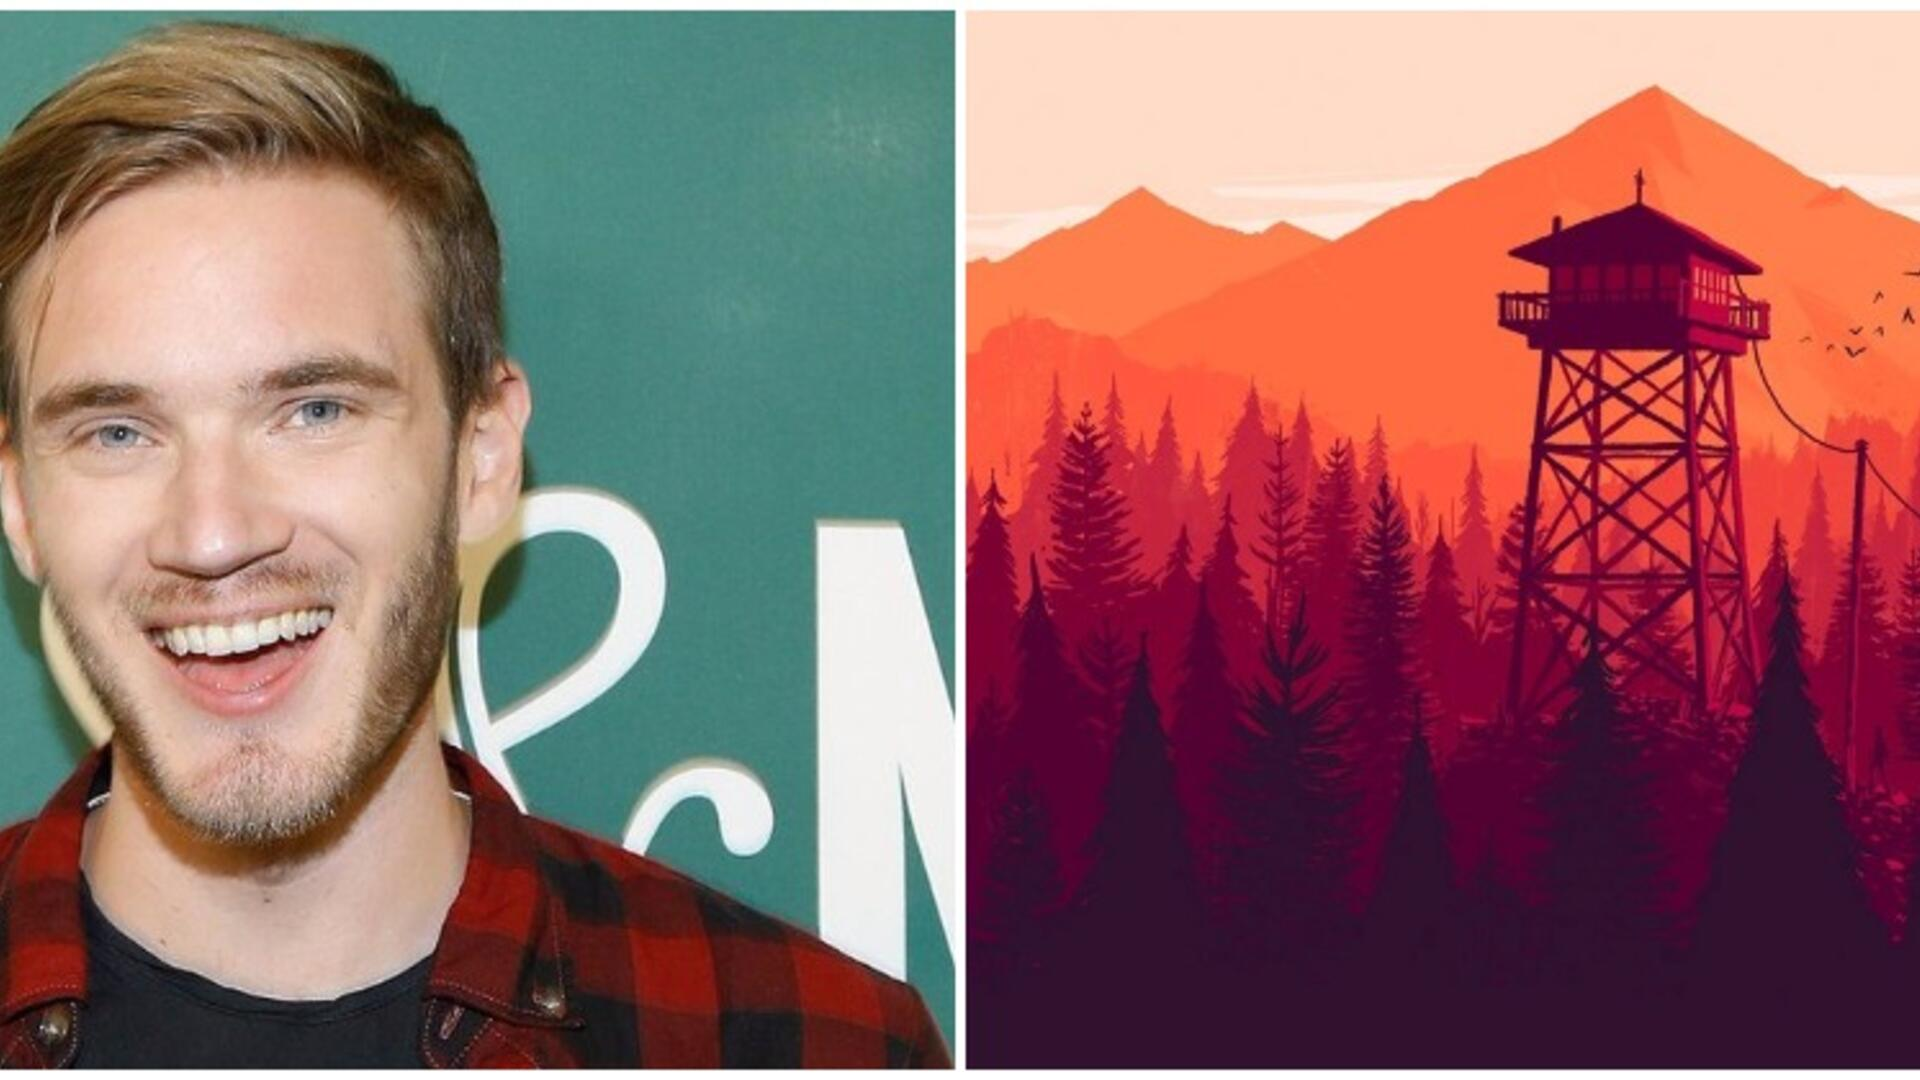 Firewatch Dev Issues DMCA Takedown Against PewDiePie After He Streamed a Racial Slur [Updated]